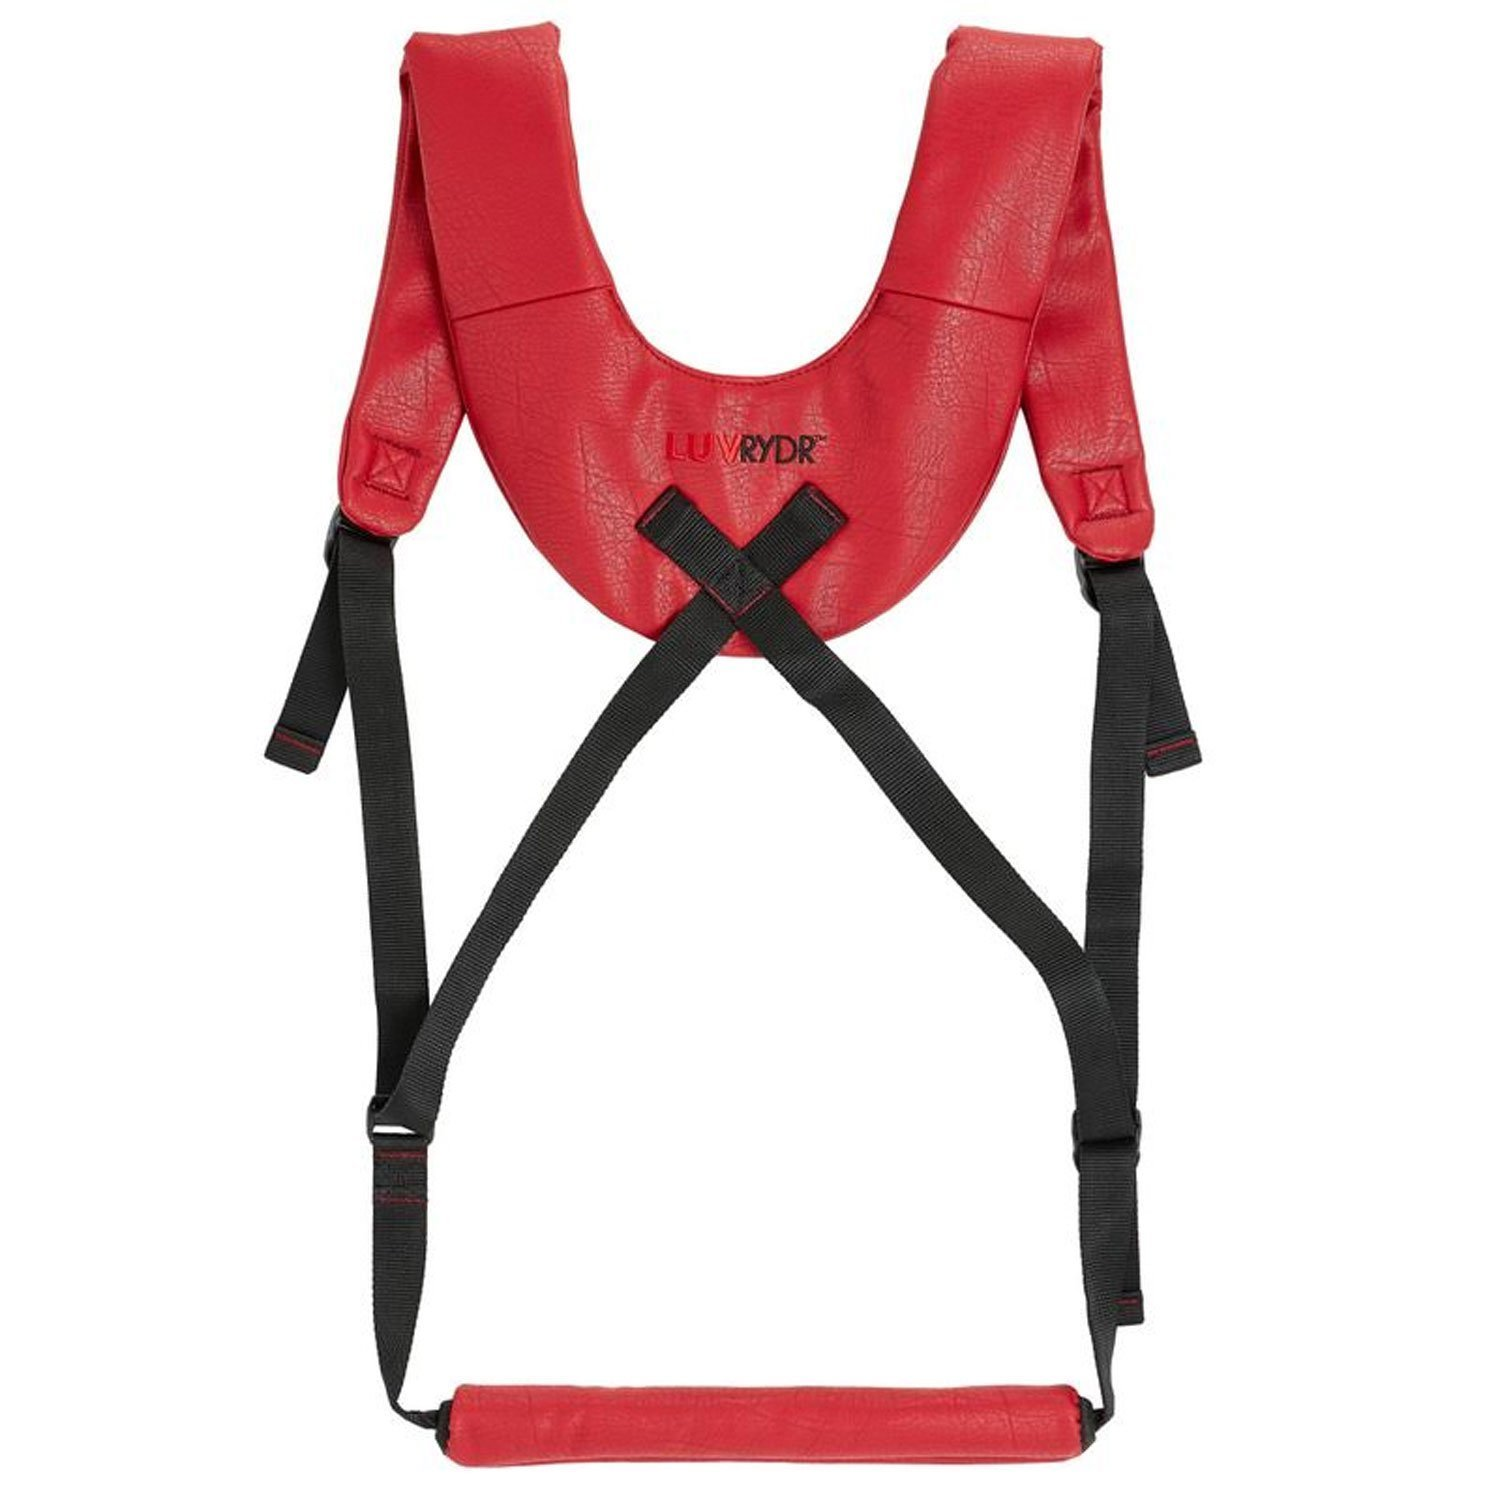 Restraint Doggy Style Strap Harness for Couples Sex Play by Miss Flora (Red) by Miss Flora